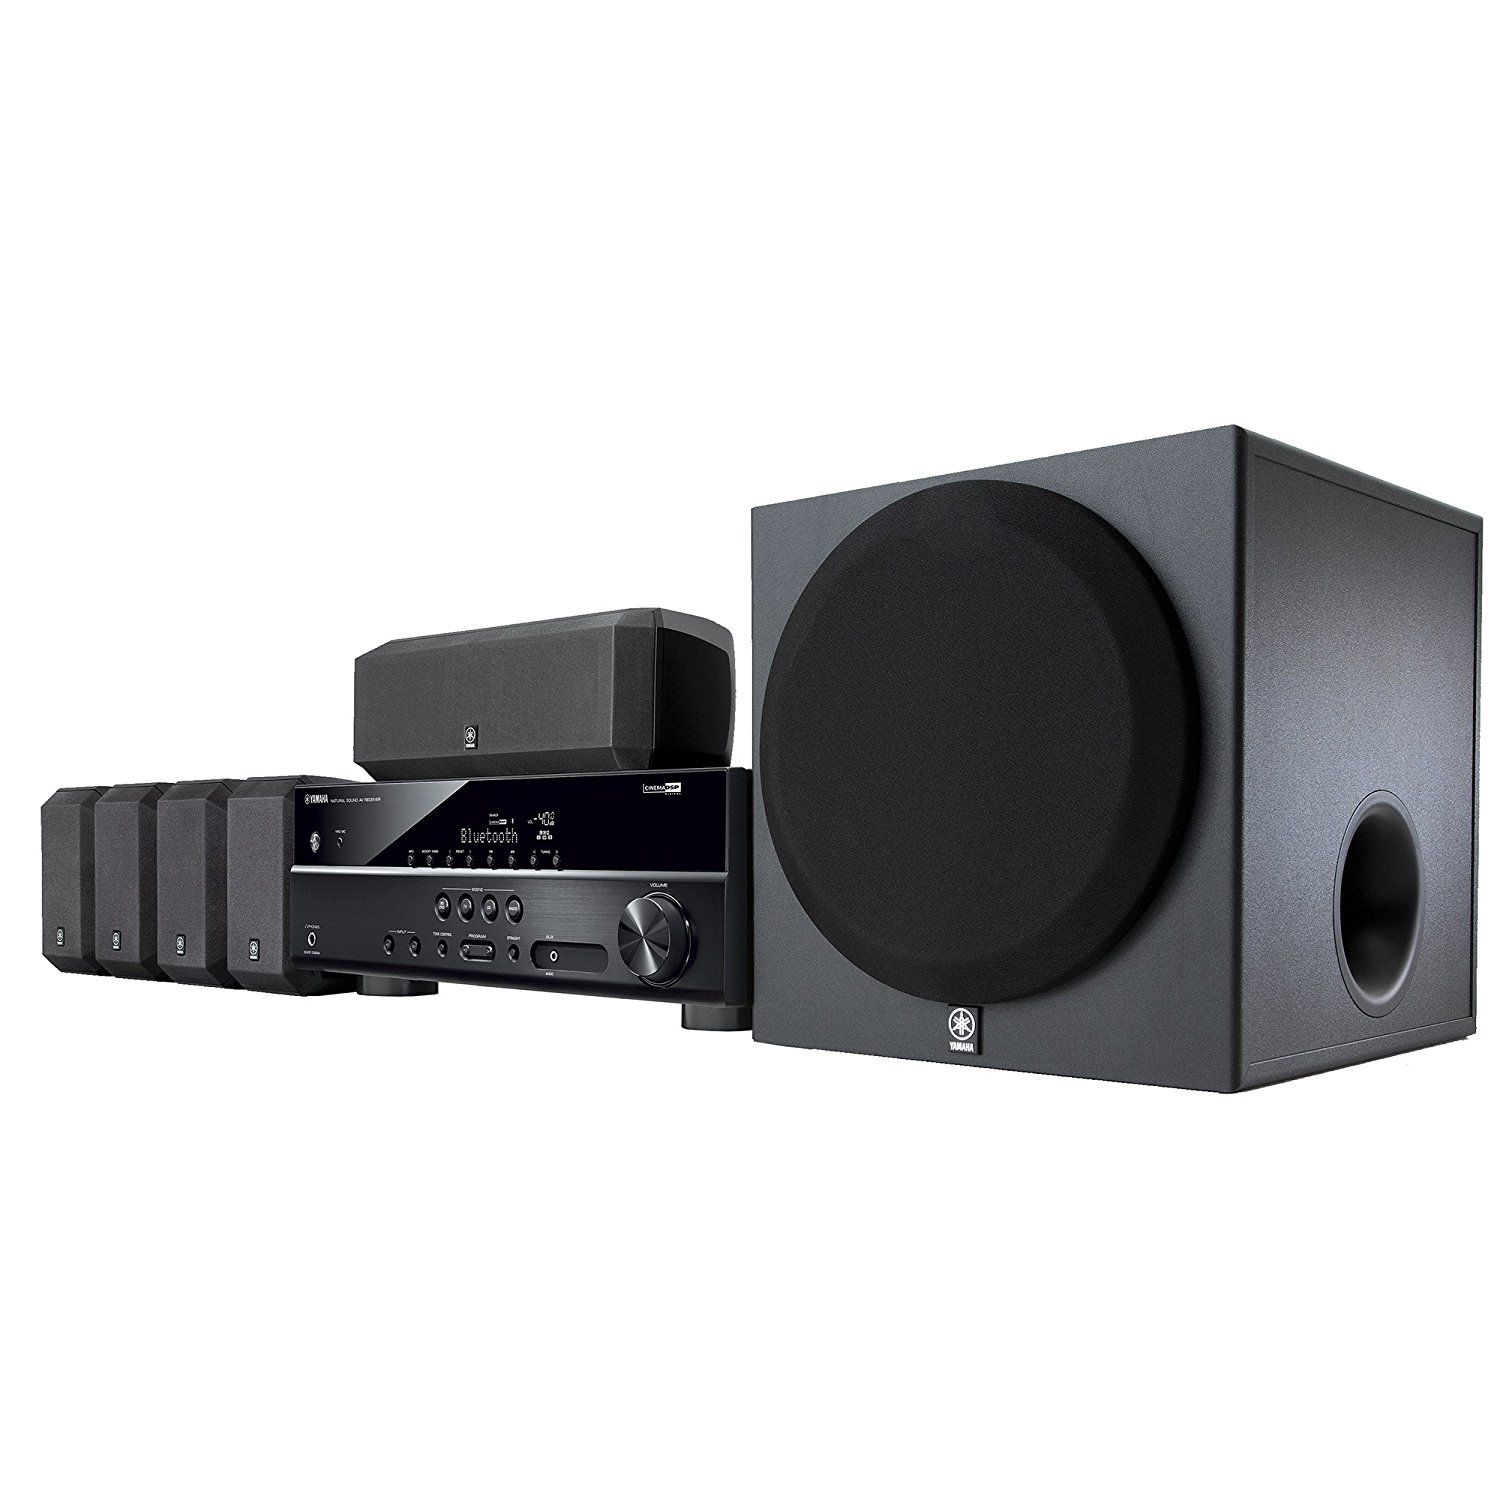 The 7 Best Home Theater Starter Kits to Buy in 2018 for Under $500